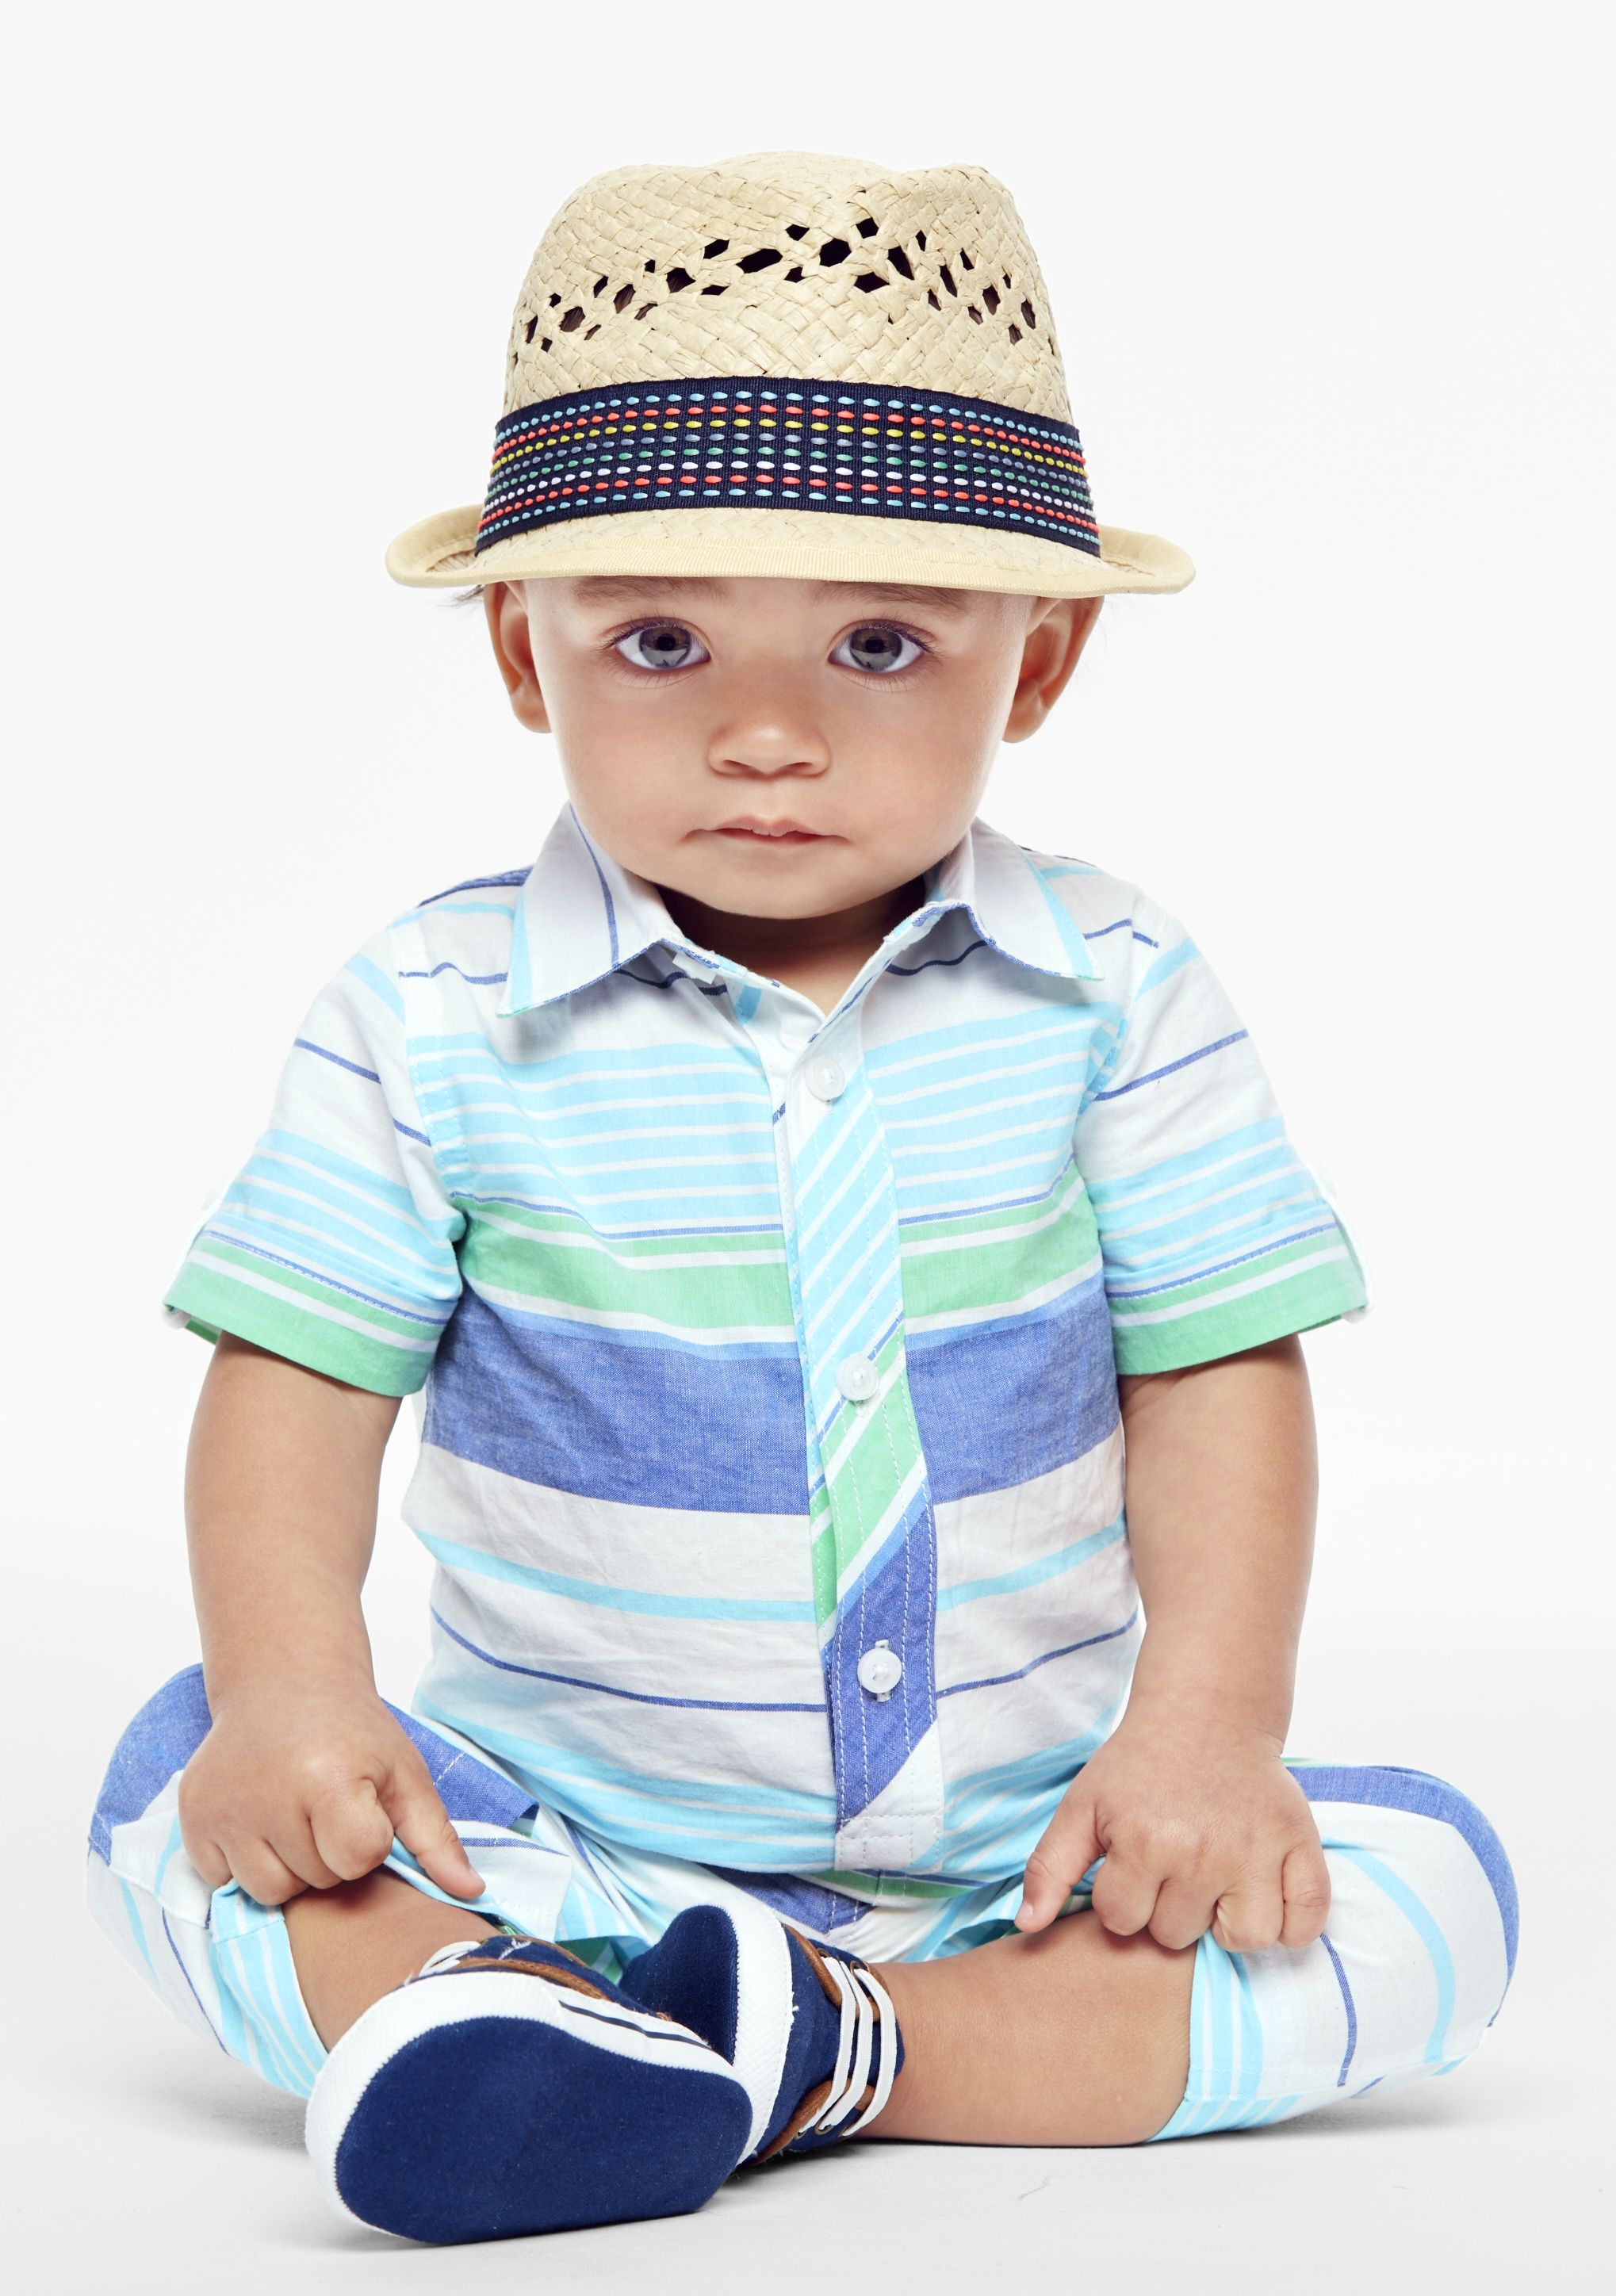 Baby s got style Baby fashion The Children s Place